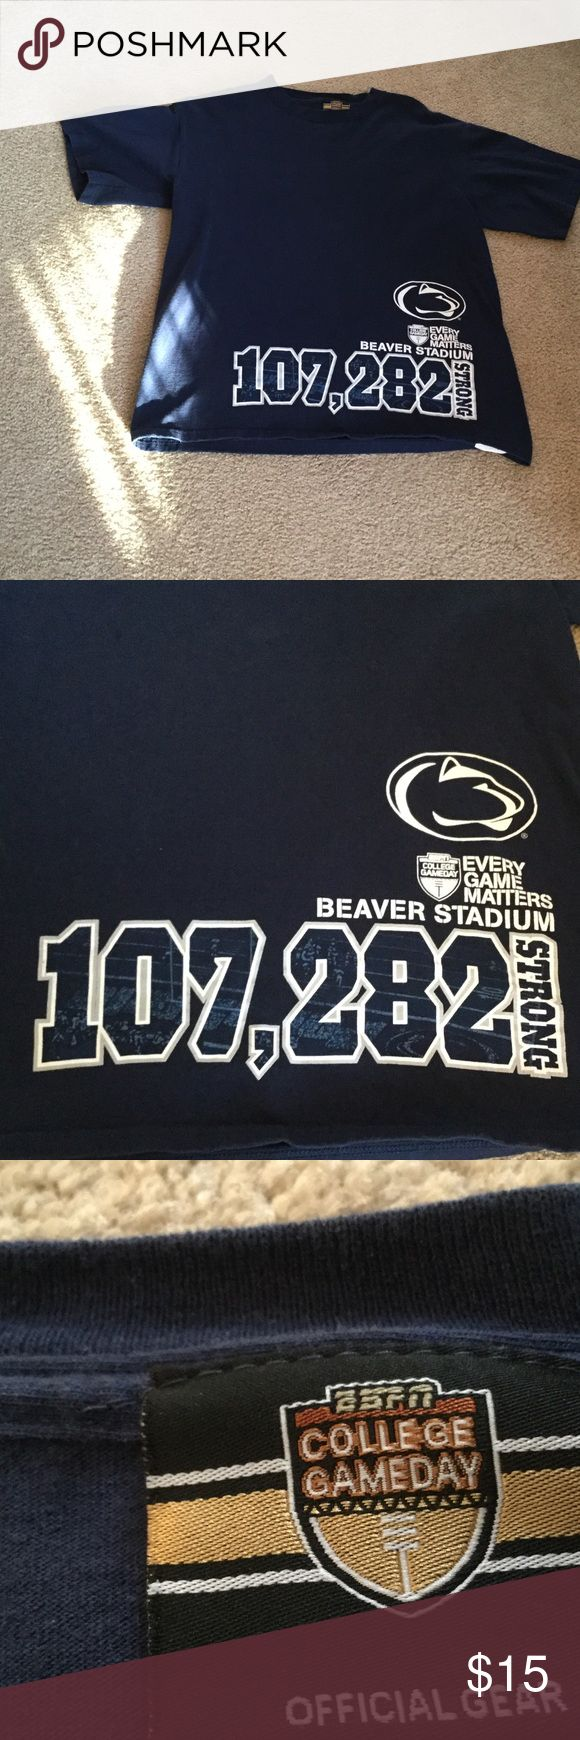 Penn State Tee Shirt. ESPN Blue and white in color.  100% cotton.  Made in Honduras.  Official college game day gear.  29 inches from shoulder to bottom of tee shirt.  Size large.  Very good condition. ESPN College Game Day Shirts Tees - Short Sleeve